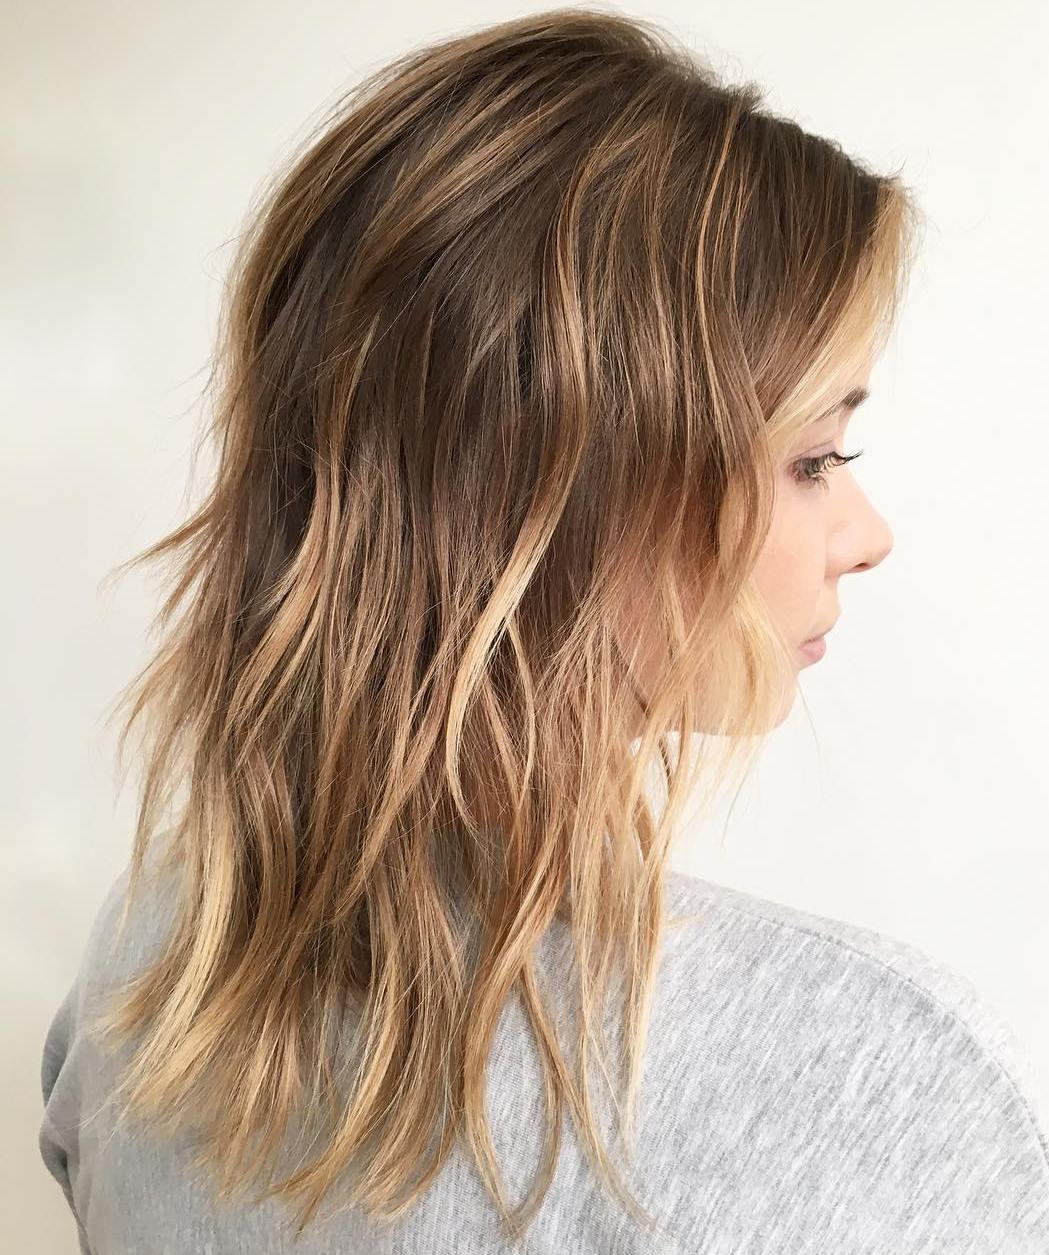 Marvelous Choppy Layered Cut For Fine Hair